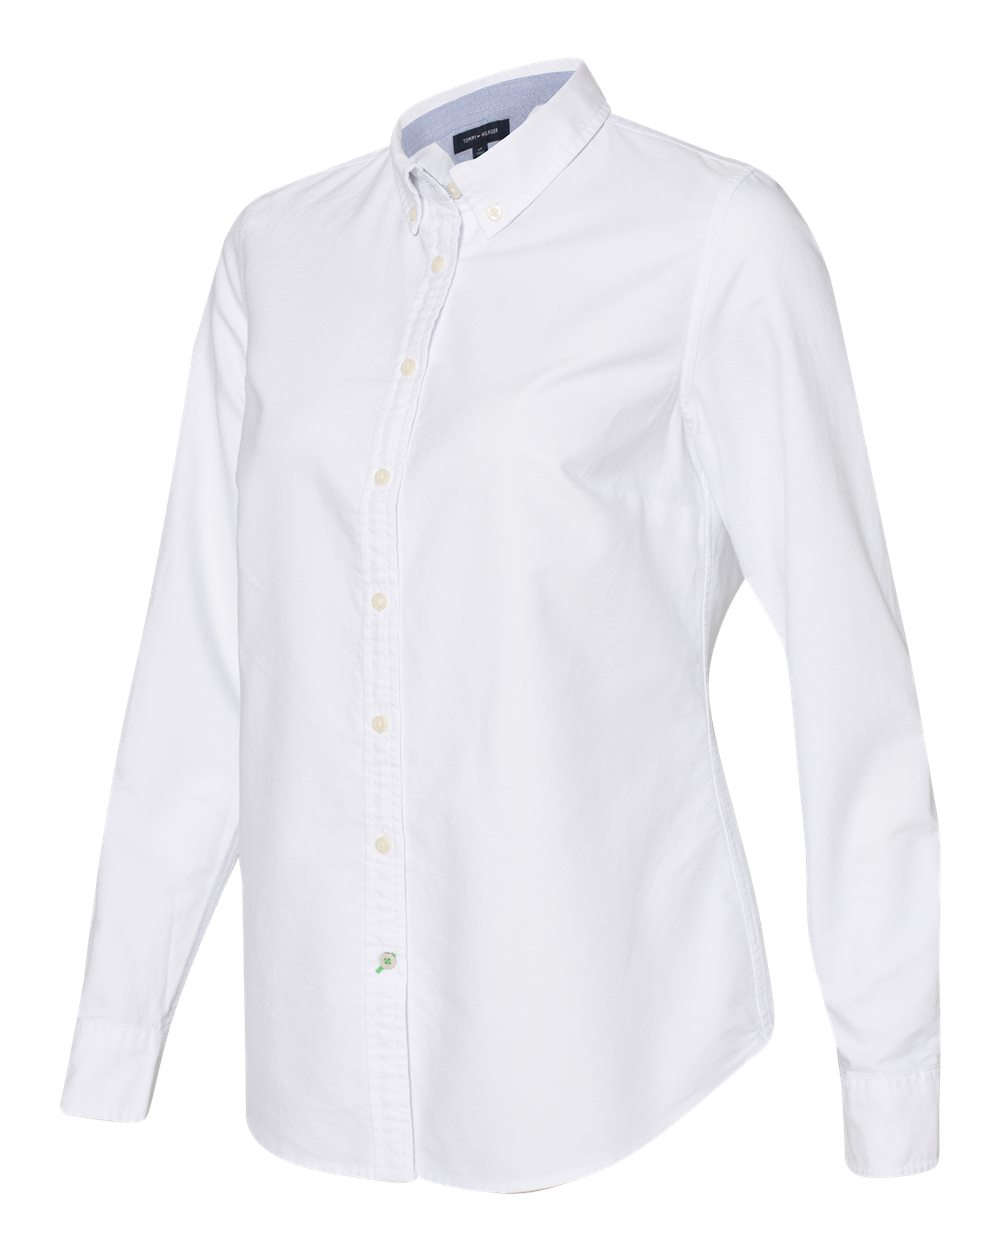 Tommy Hilfiger 13H4378 - Women's New England Solid Oxford Shirt